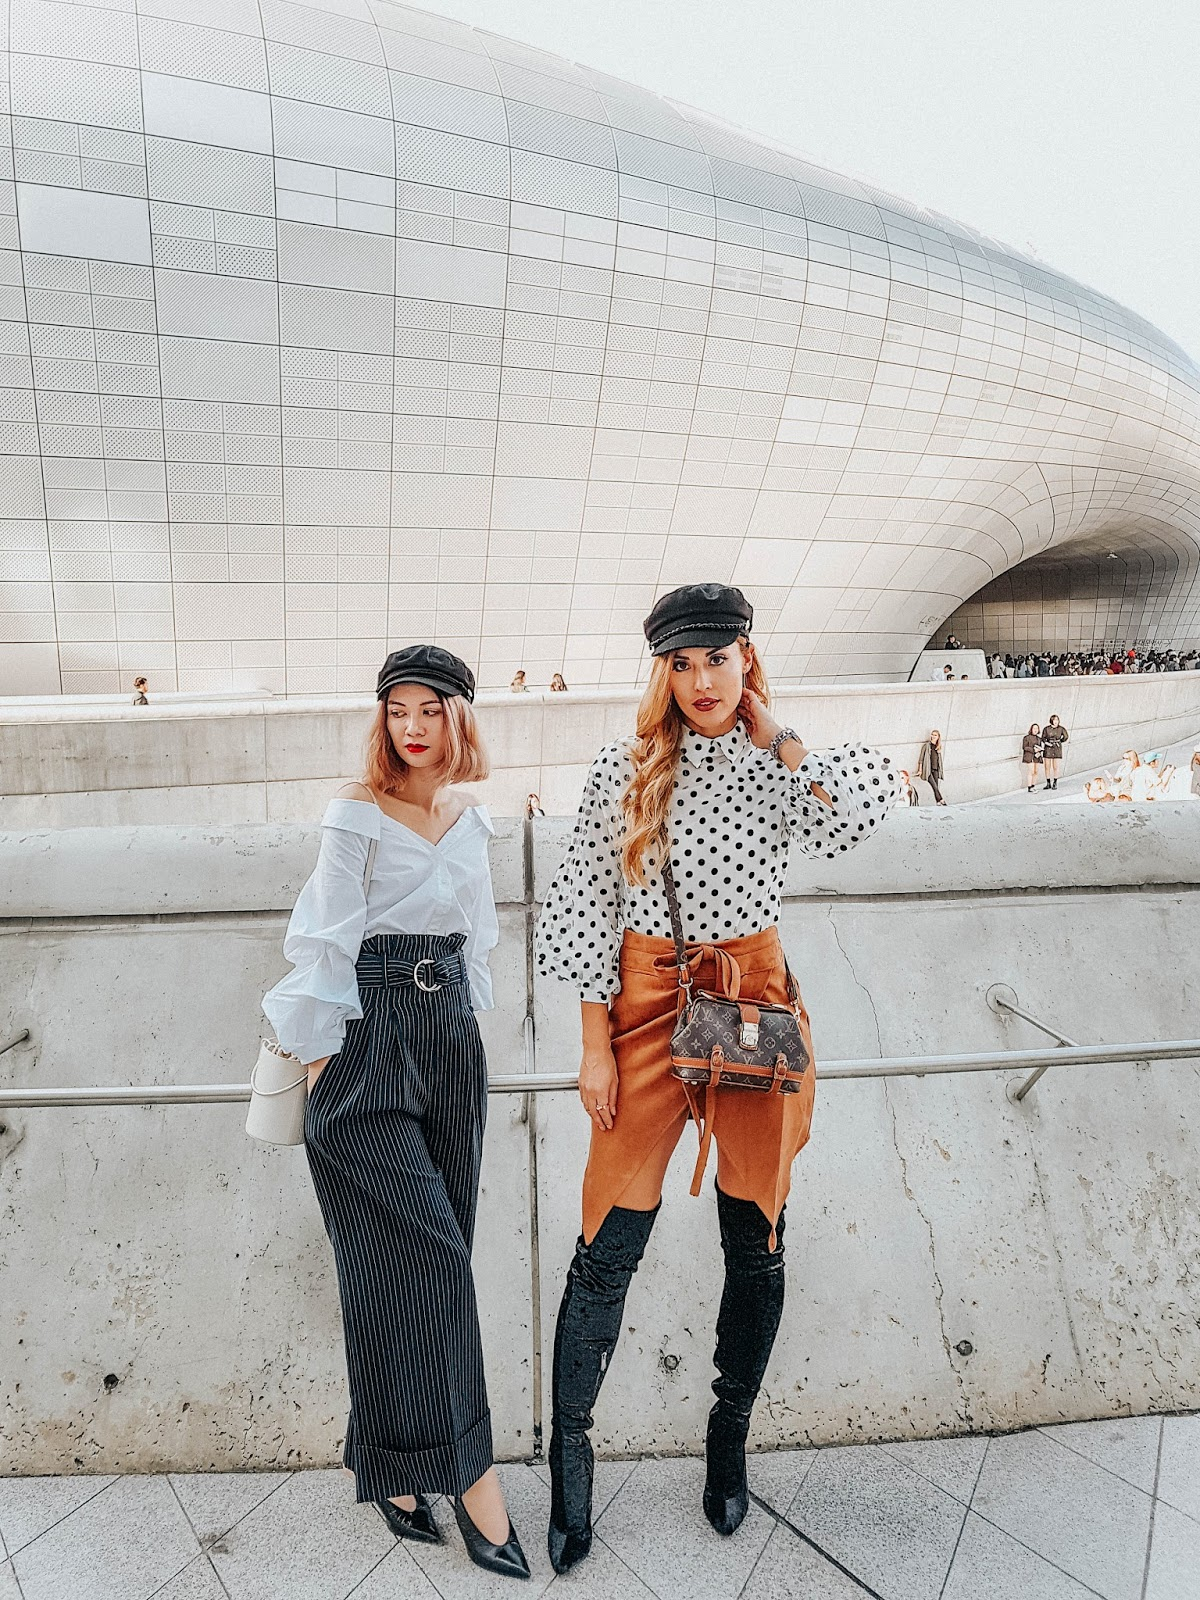 korea travel guide, seoul travel guide, seoul, korea, ddp, dongdaemun design plaza, dongdaemun, travel guide, travel, seoul tourism, travel blog, and other stories, chloe girl, chloe faye, seoul fashion week, oak and fort, wide legged pants, jacquemus, off the shoulder top, brixton hat,